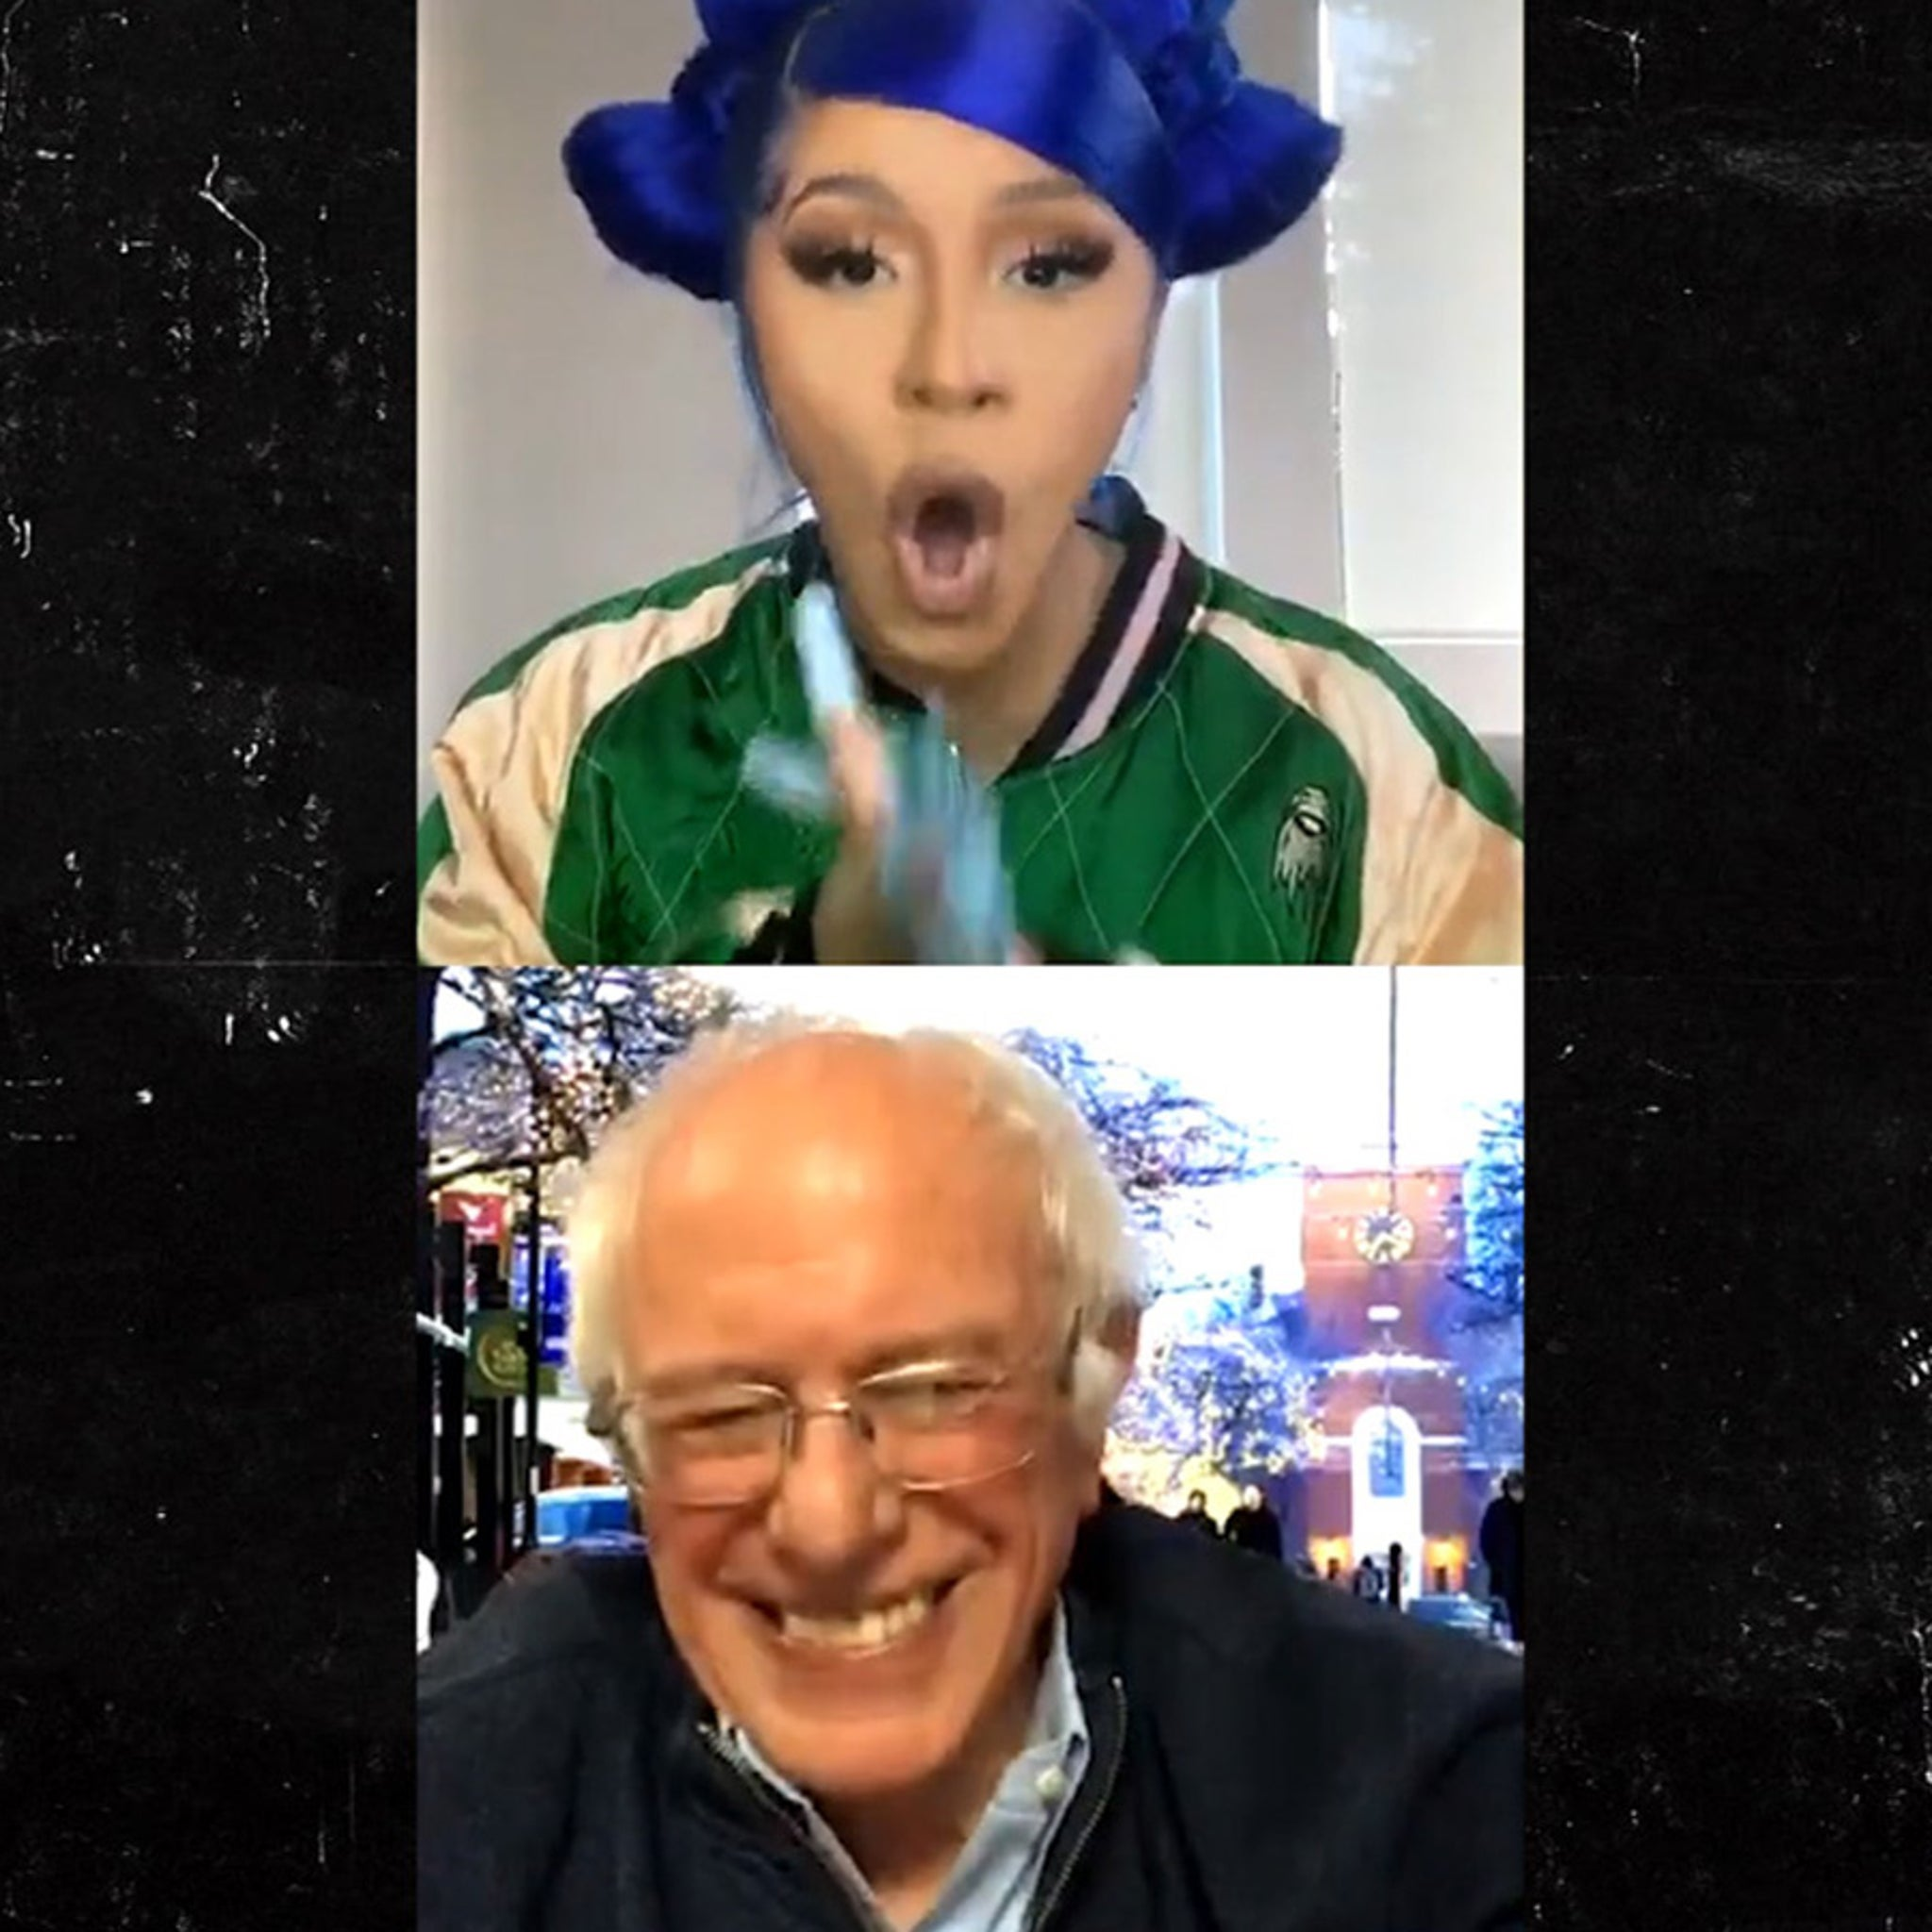 Cardi B Bernie Sanders Trash Talk Donald Trump On Instagram Live